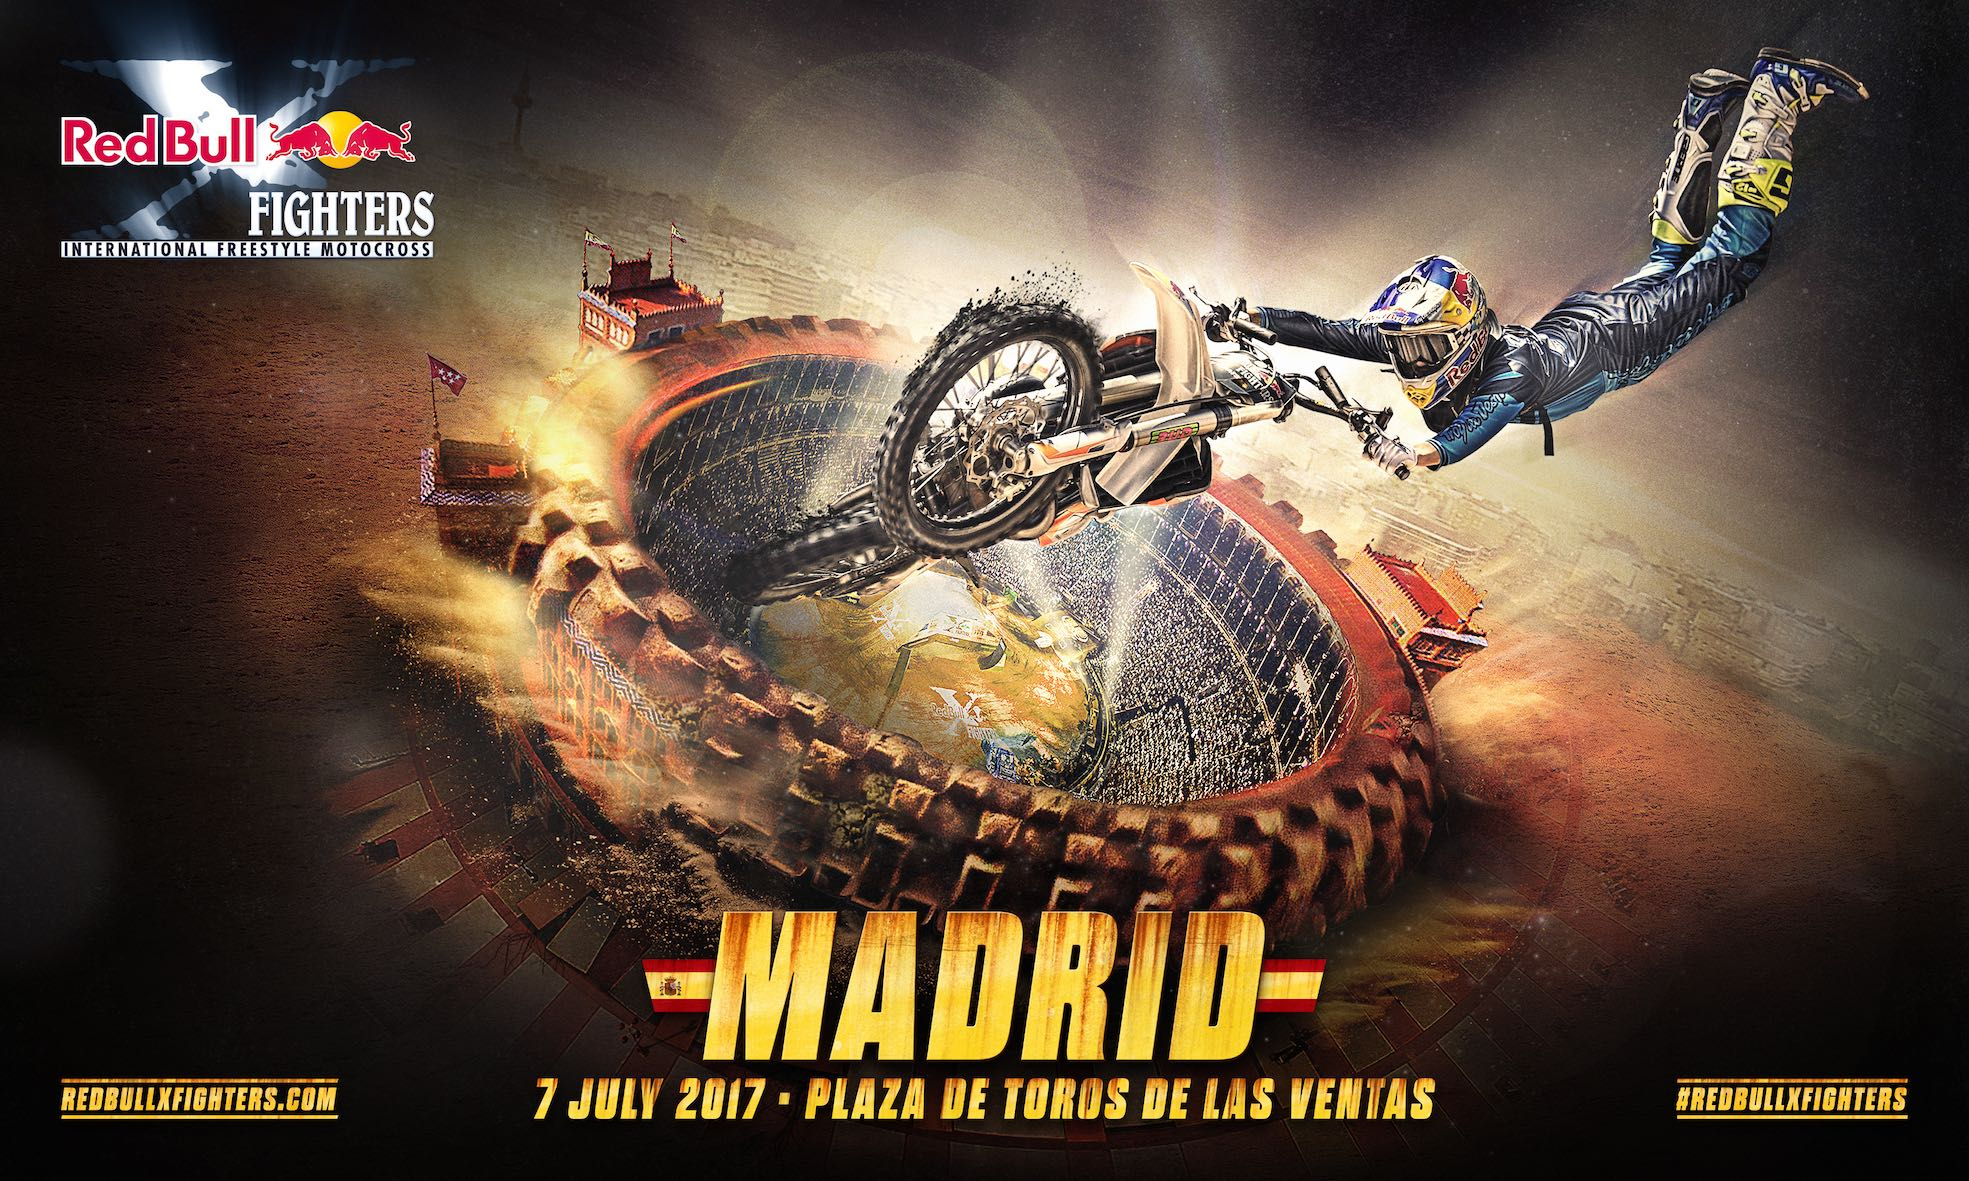 Witness the world's best FMX riders battling it out for the Red Bull X-Fighters title in Madrid. LIVE stream starts at 10:00pm on Friday 7 July.